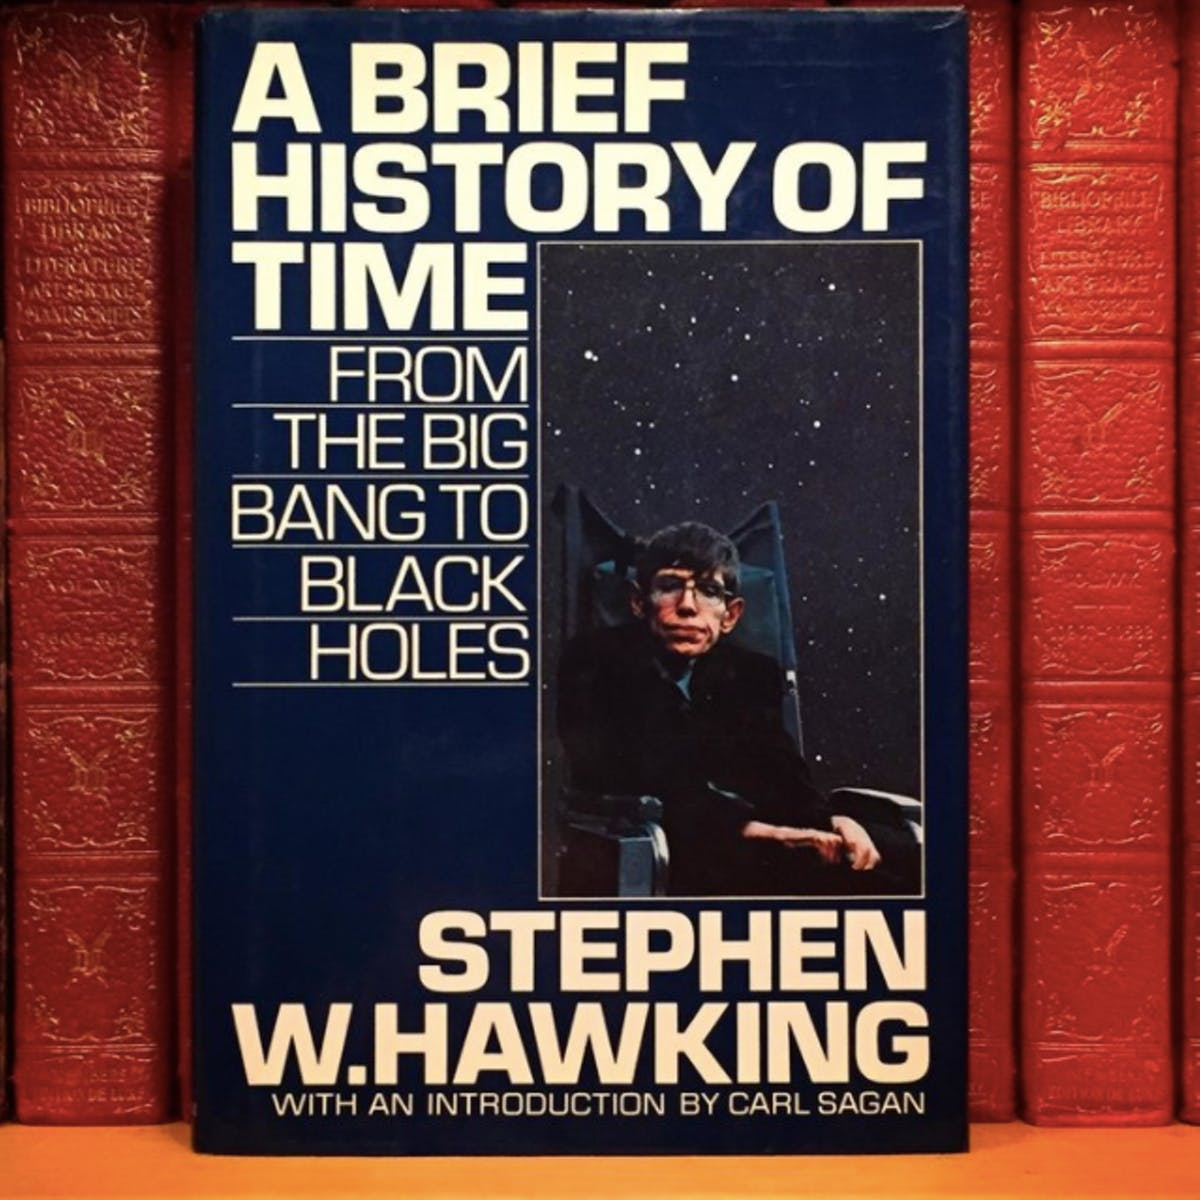 Stephen Hawking Death Why A Brief History Of Time Was A